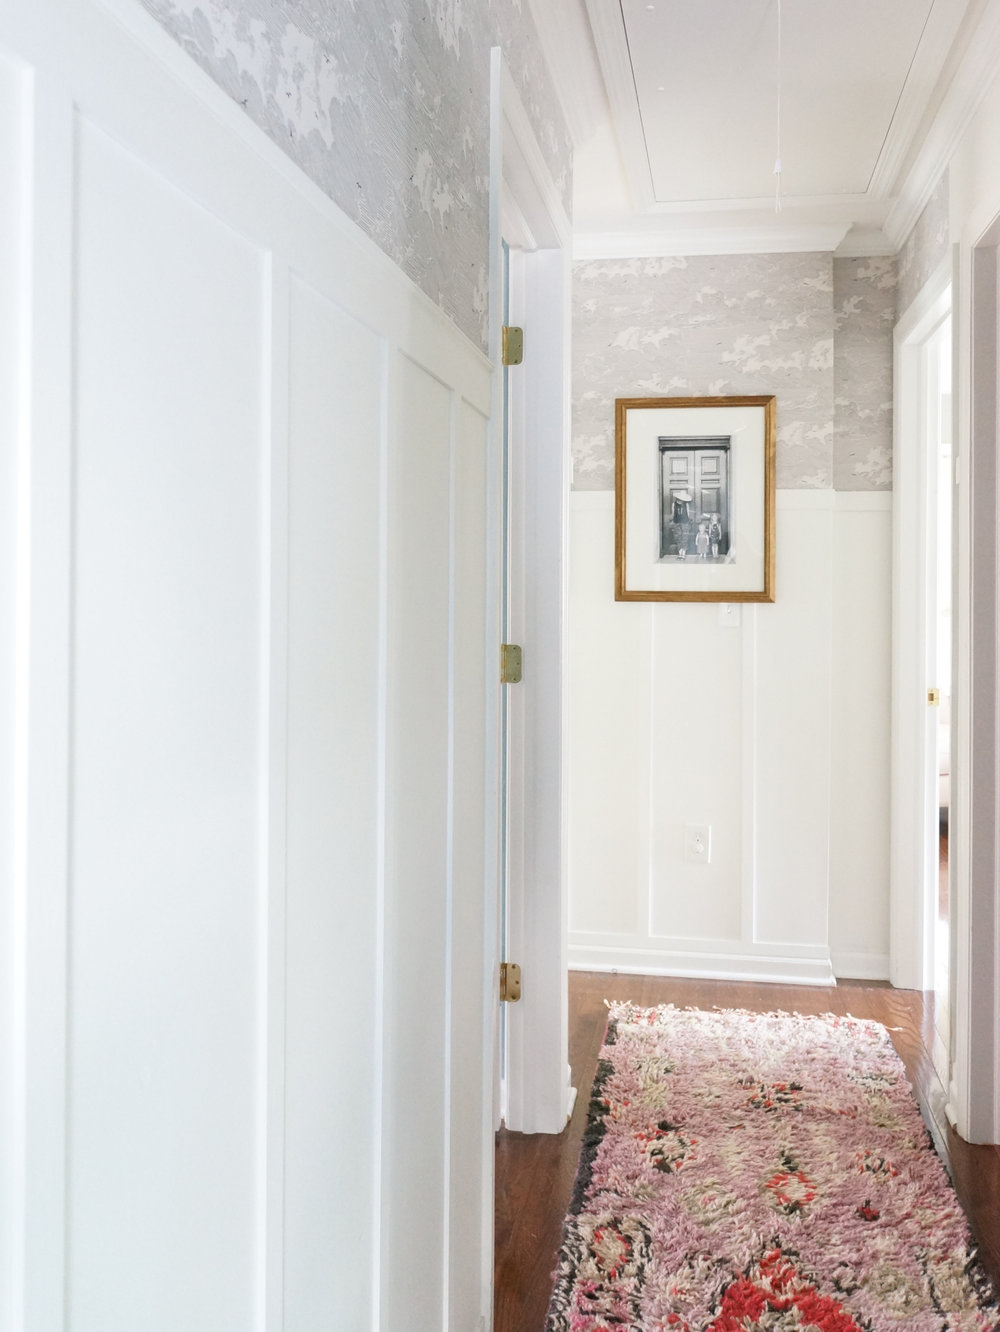 The hallway in progress...can't wait to finish adding trim and art!